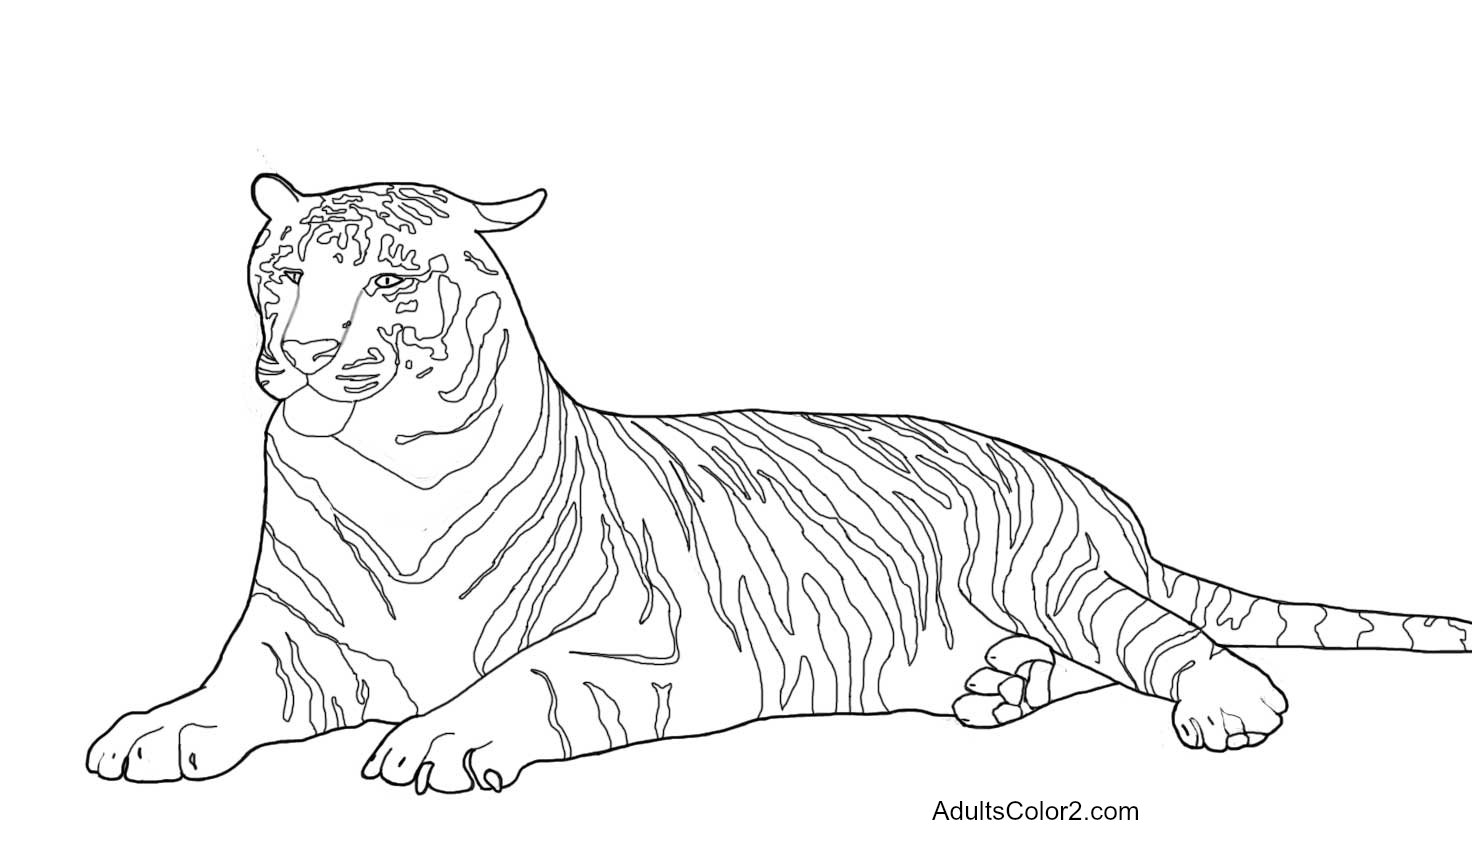 Line Drawing Tiger : Pics for gt tiger line drawing